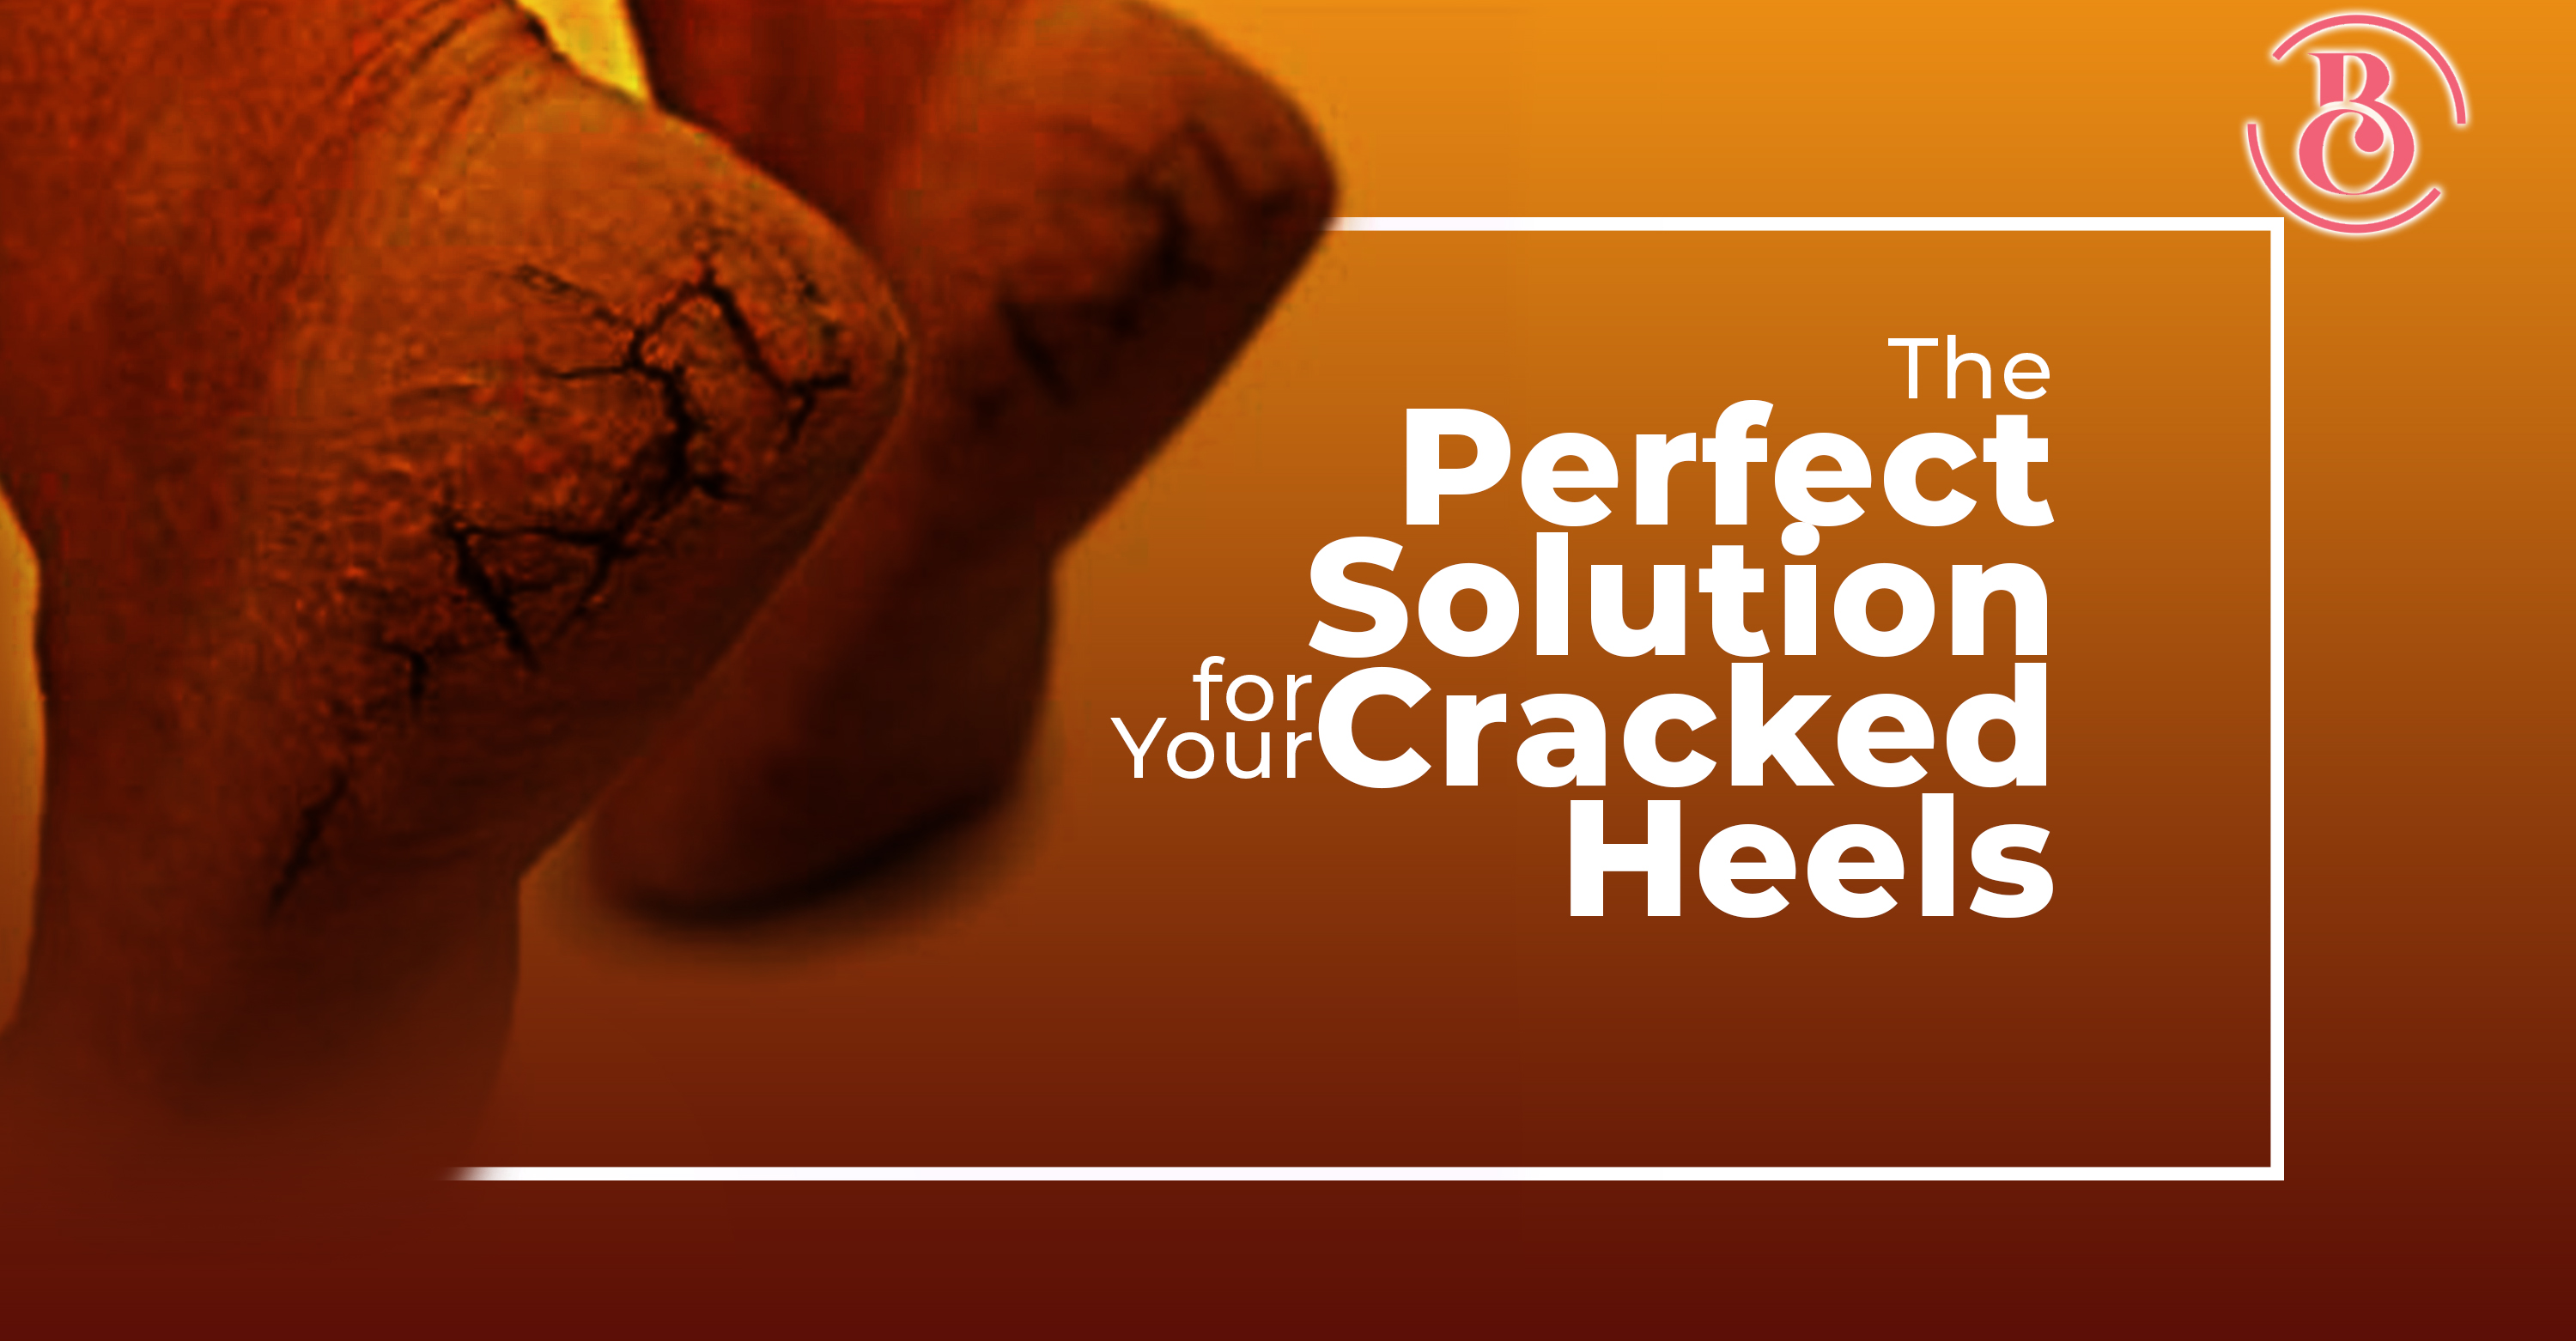 9 Tips to Help Heal Your Cracked Heels